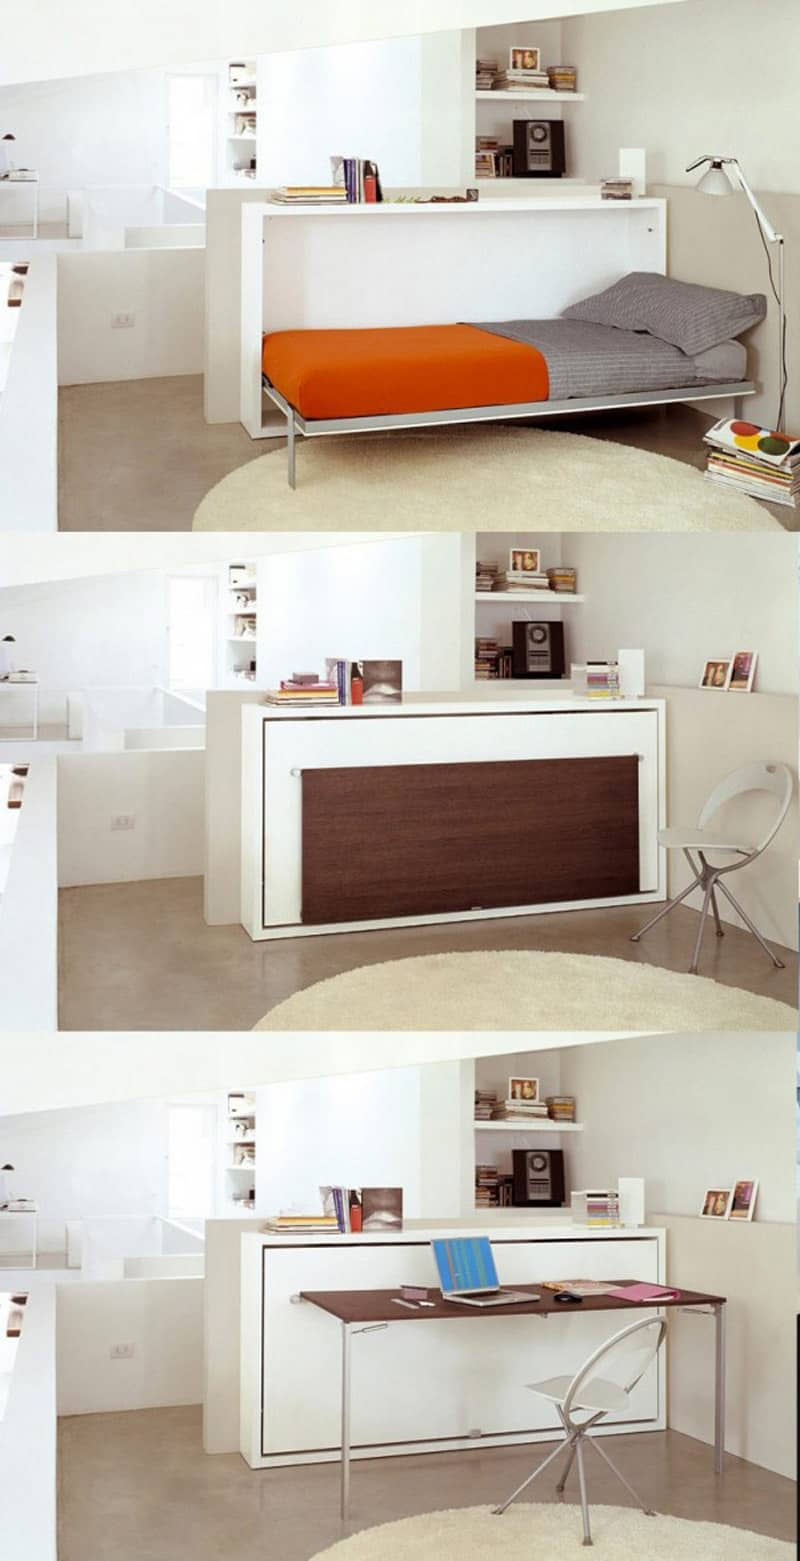 designrulz- Space Saving Beds and Bedrooms (16)